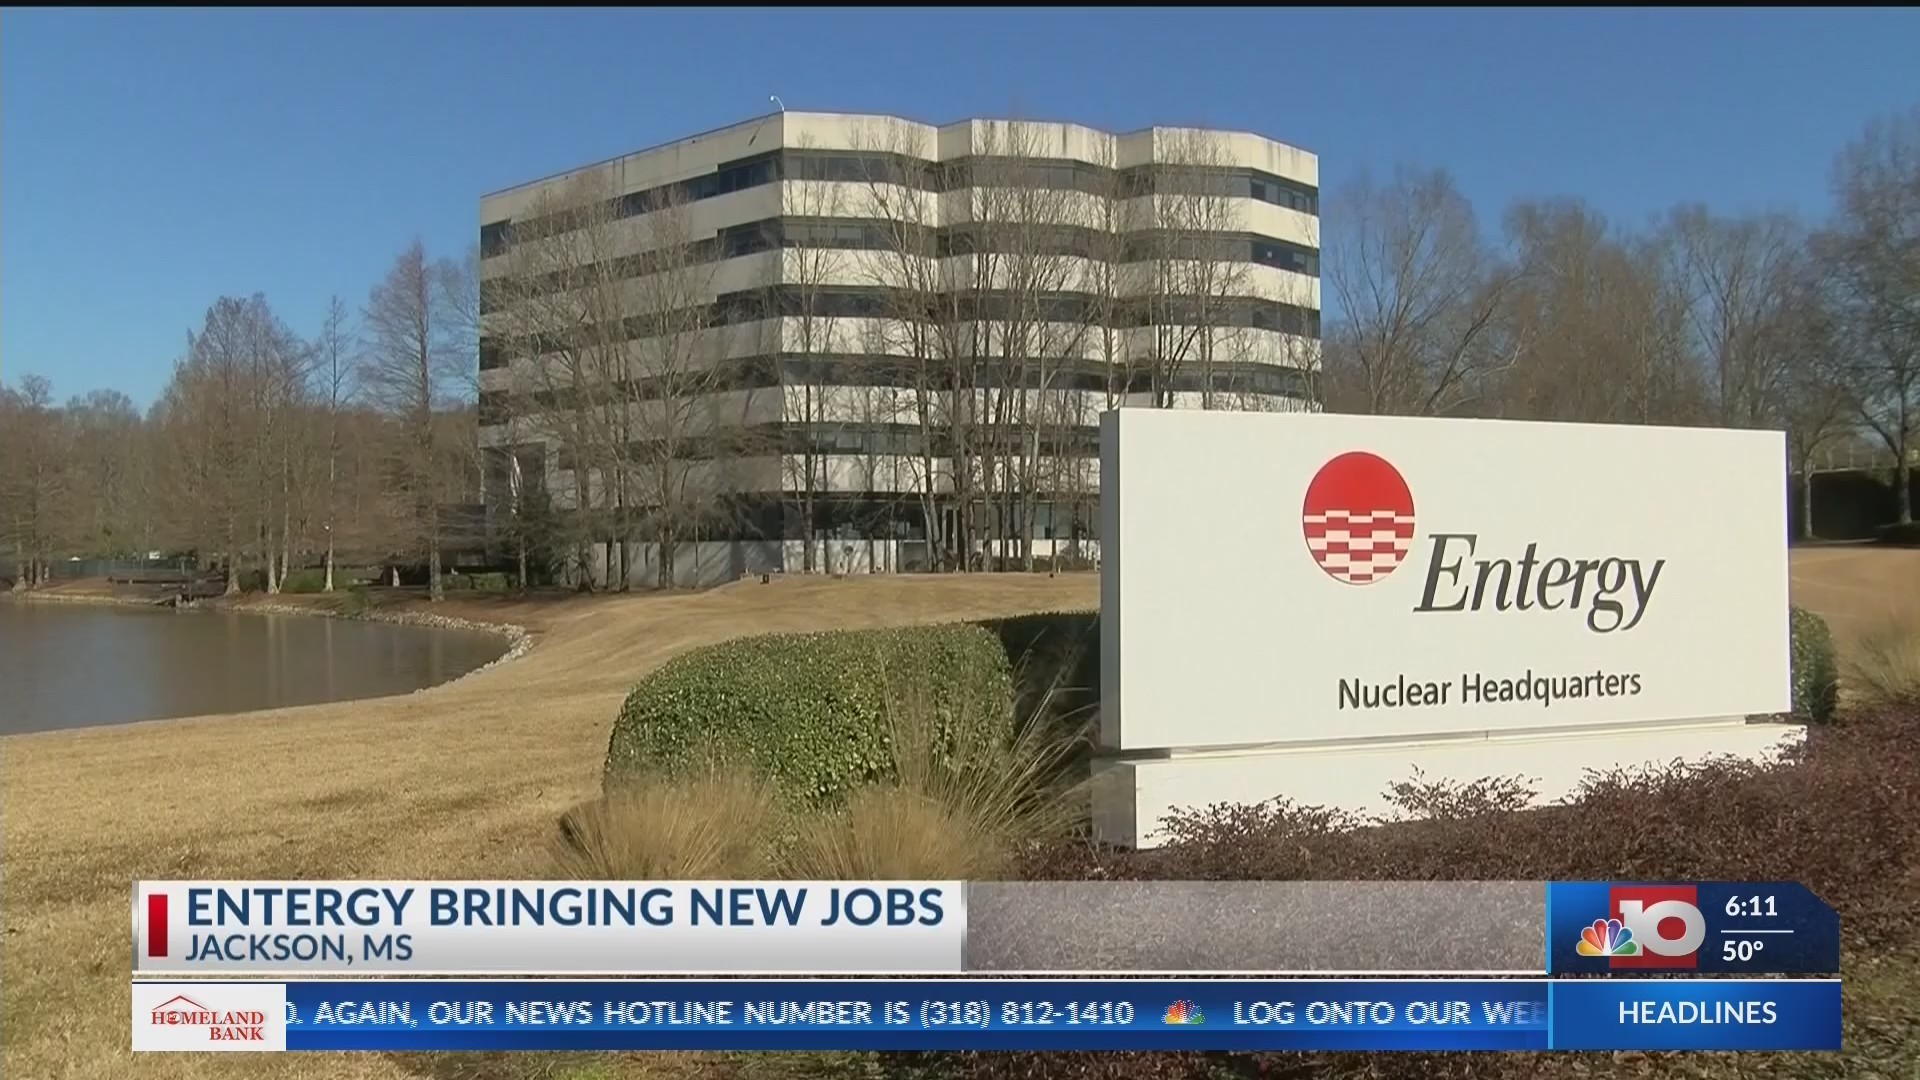 Entergy adding 250 jobs to nuclear headquarters in Jackson